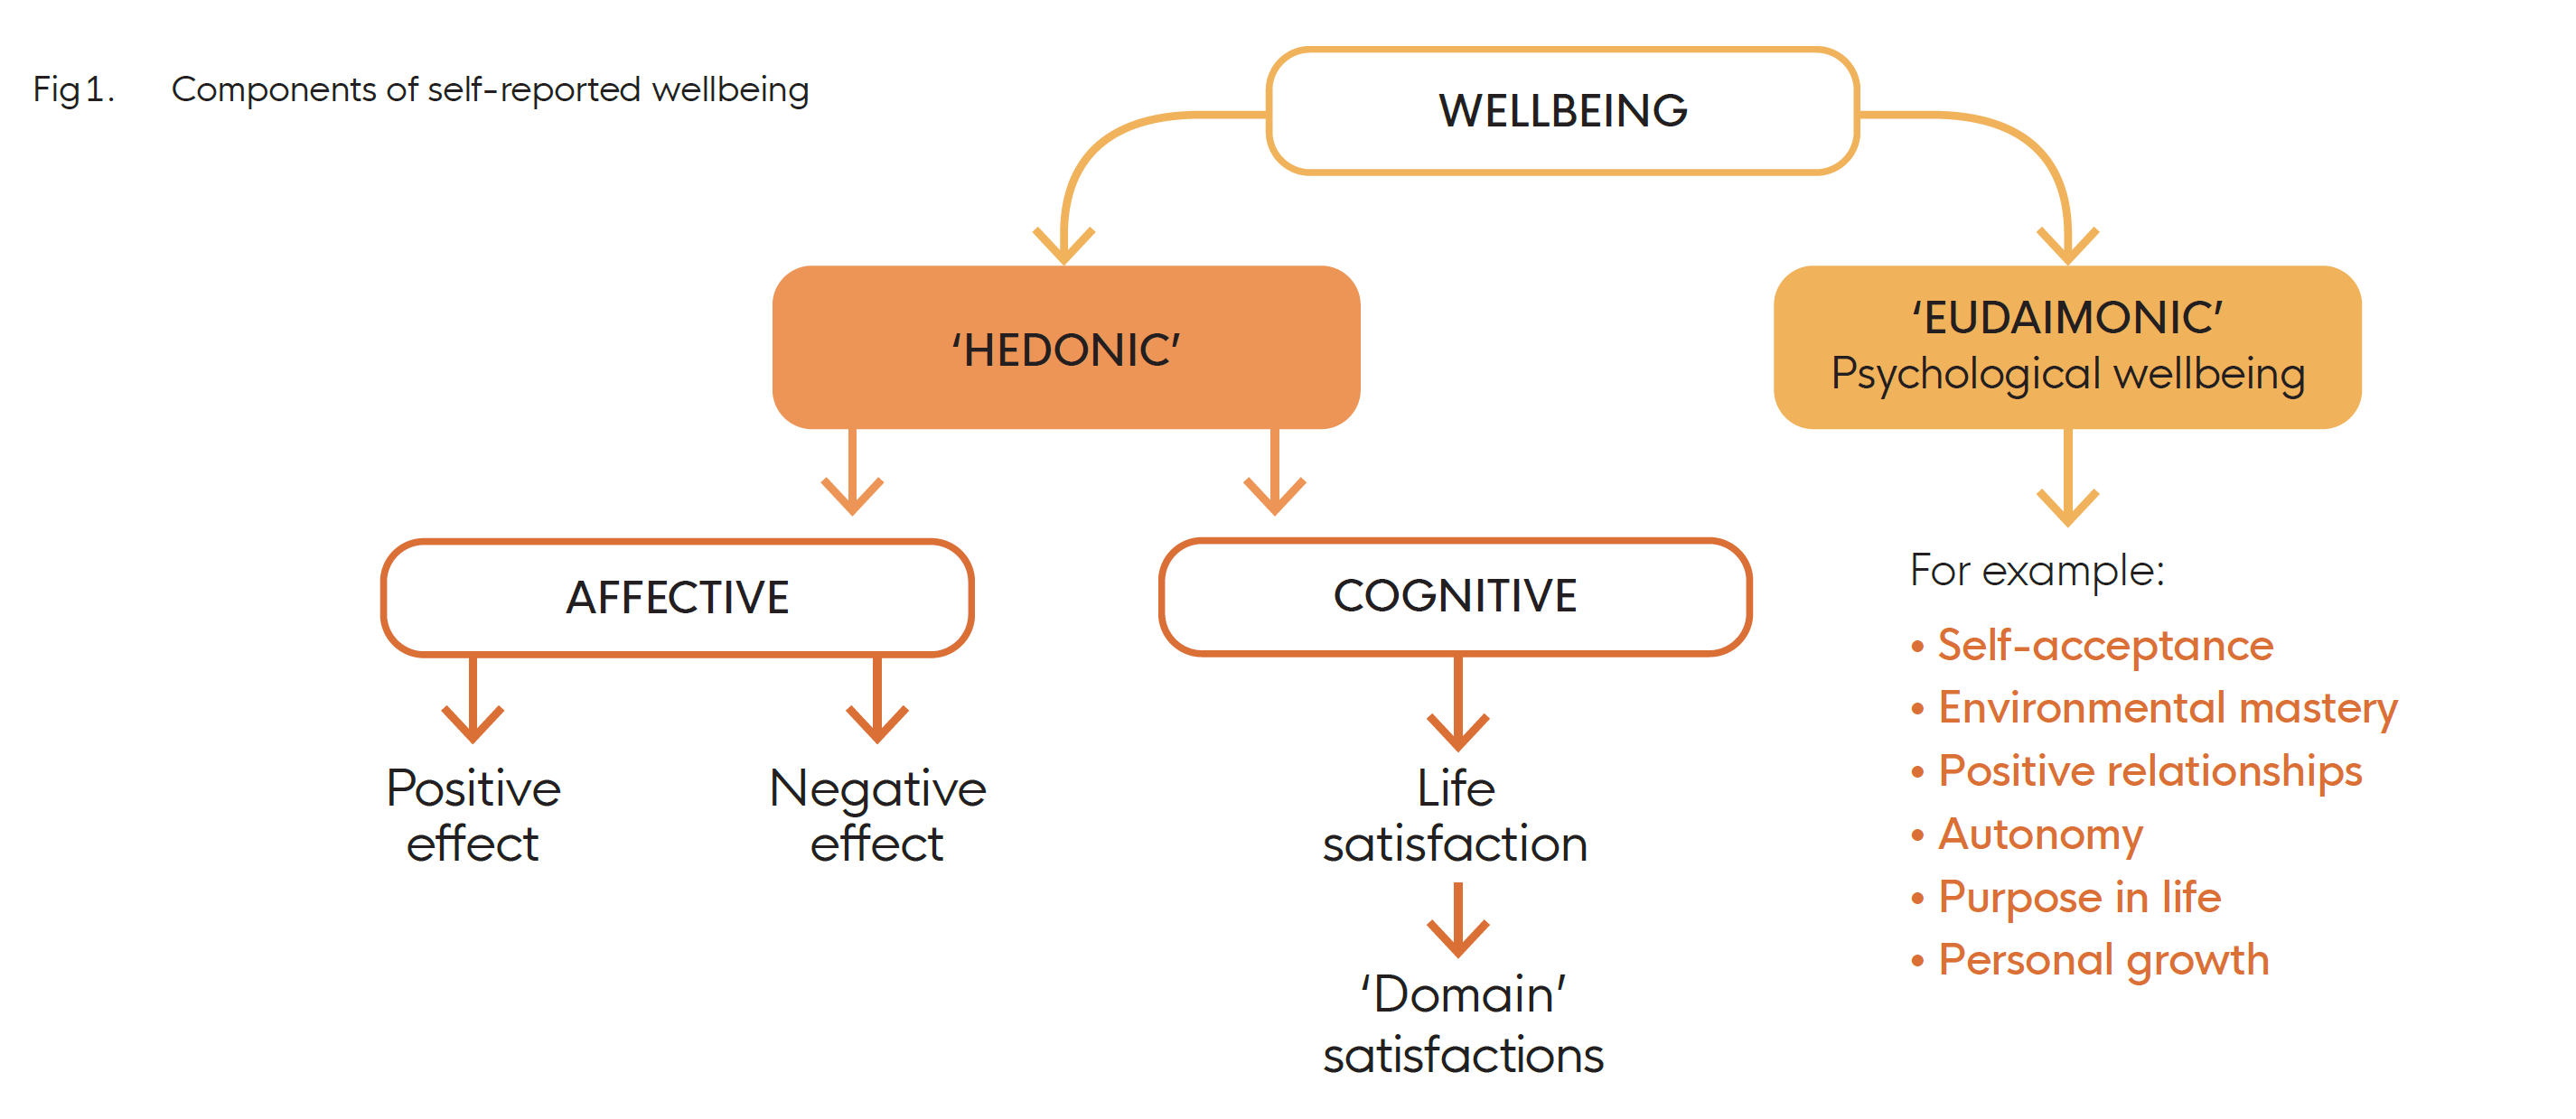 Diagram showing different aspects of wellbeing